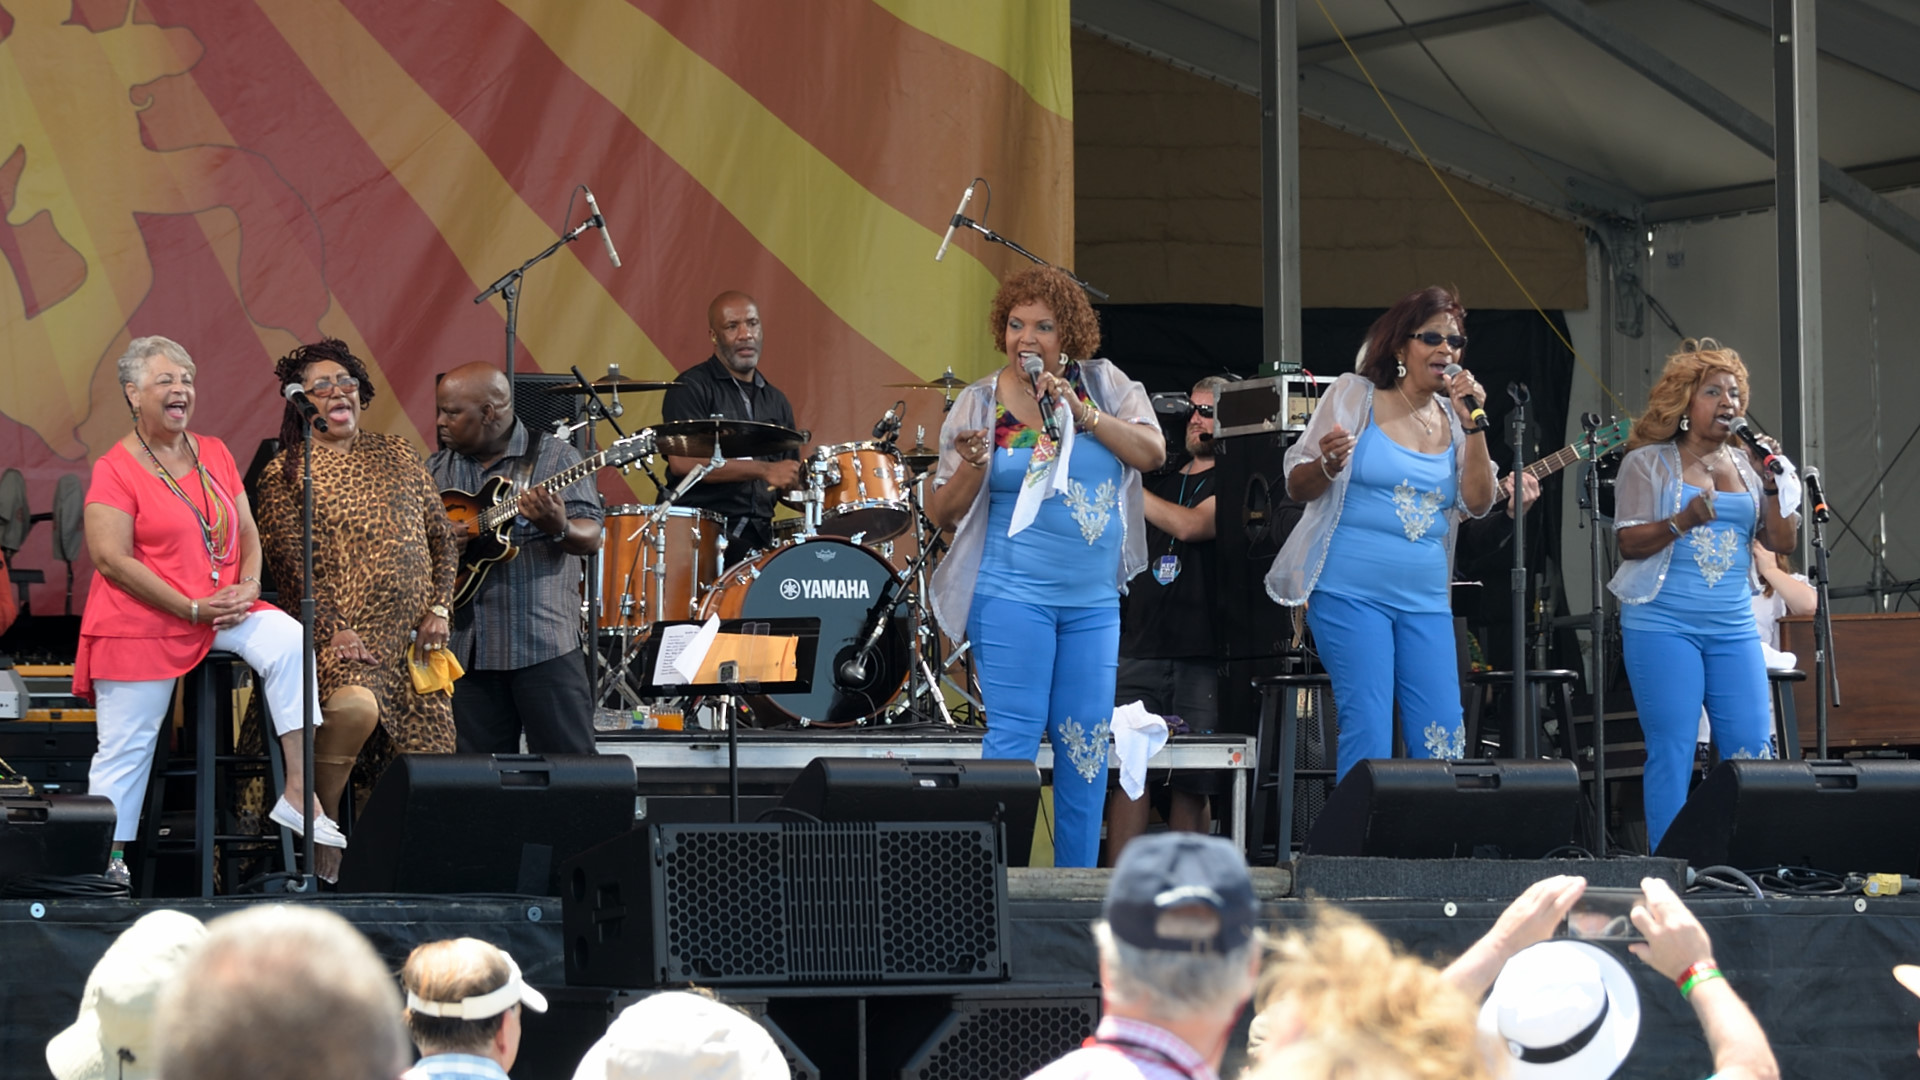 Wanda Rouzan, Jean Knight, and The Dixie Cups